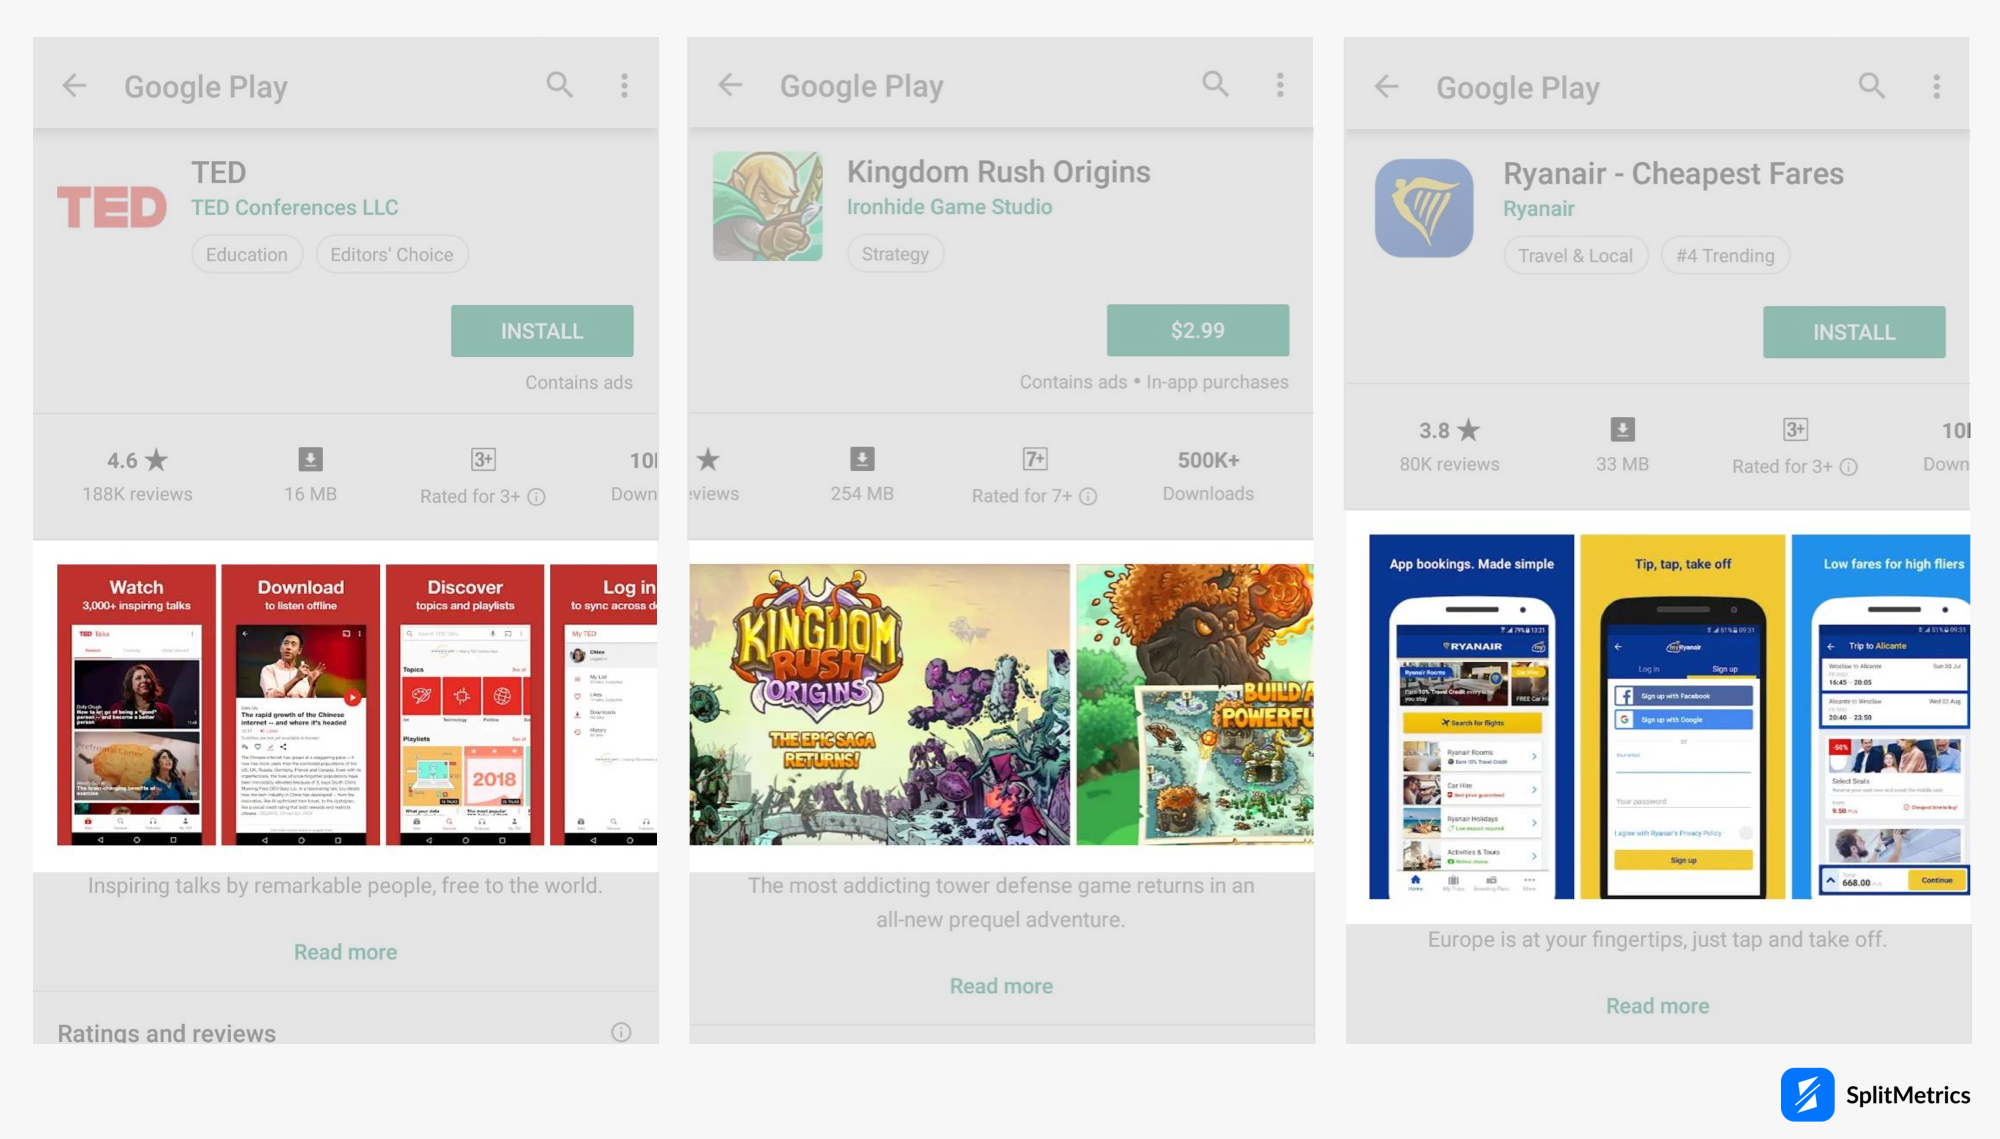 All-in-one guide to the Play Store product page requirements